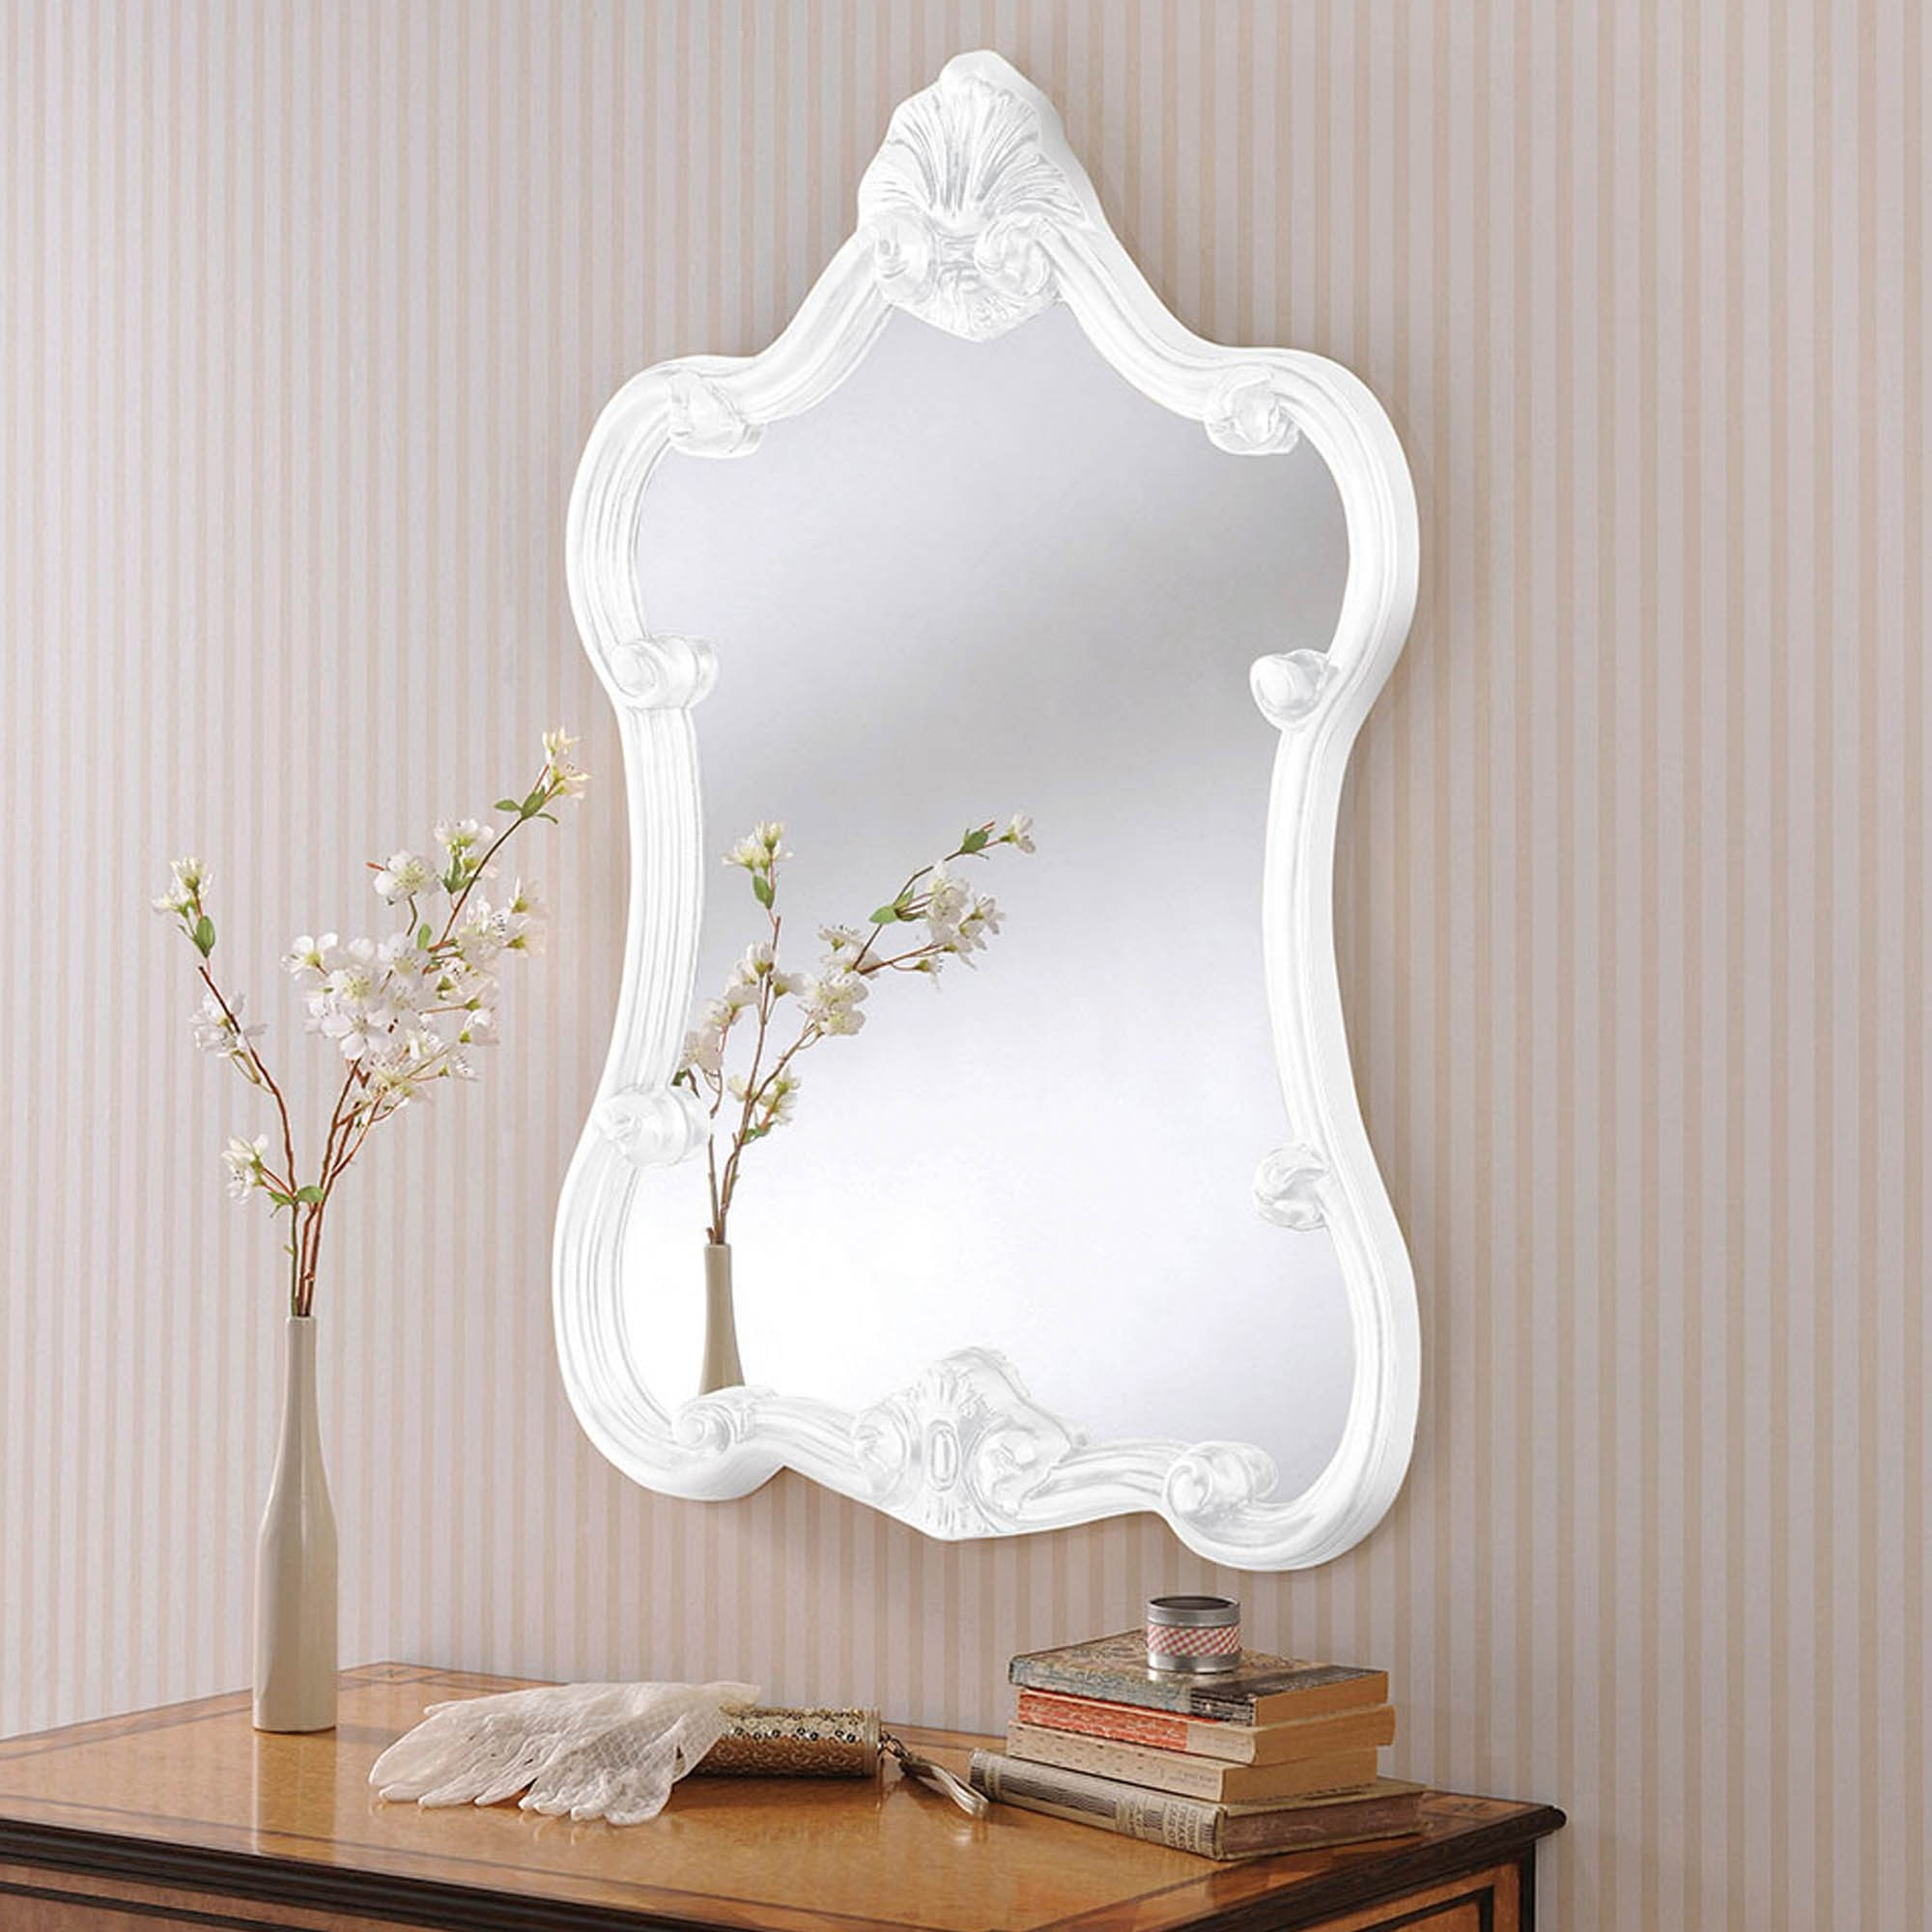 Ornate Wall Mirrors Intended For 2020 Decorative White Ornate Wall Mirror (View 19 of 20)